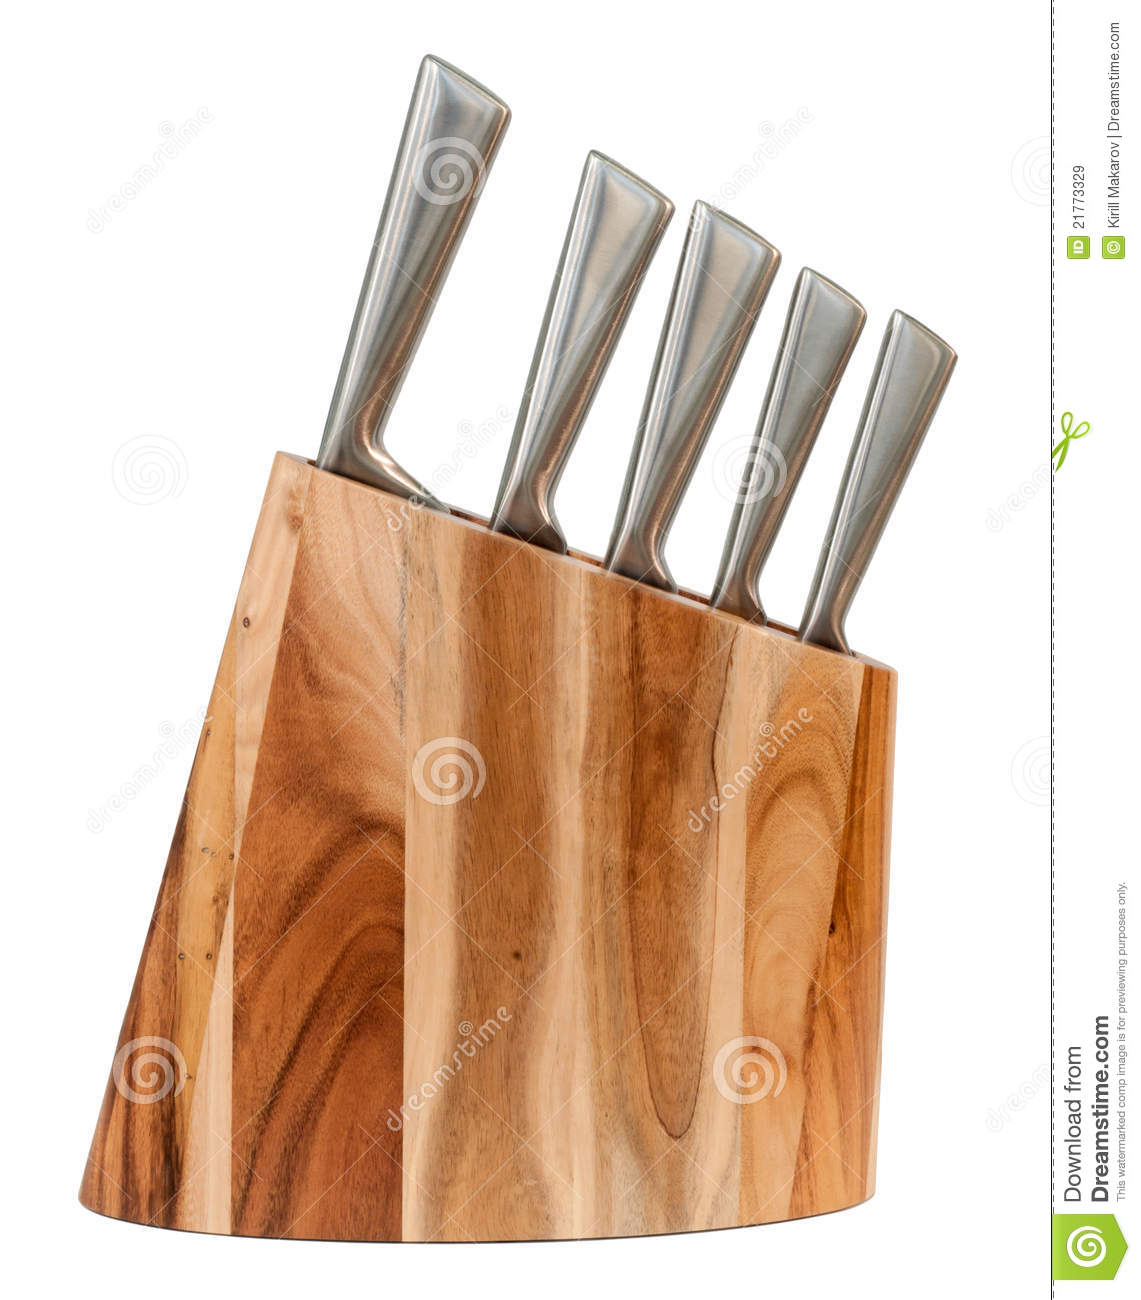 Kitchen Knife Set In A Wooden Block Royalty Free Stock Images - Image ...